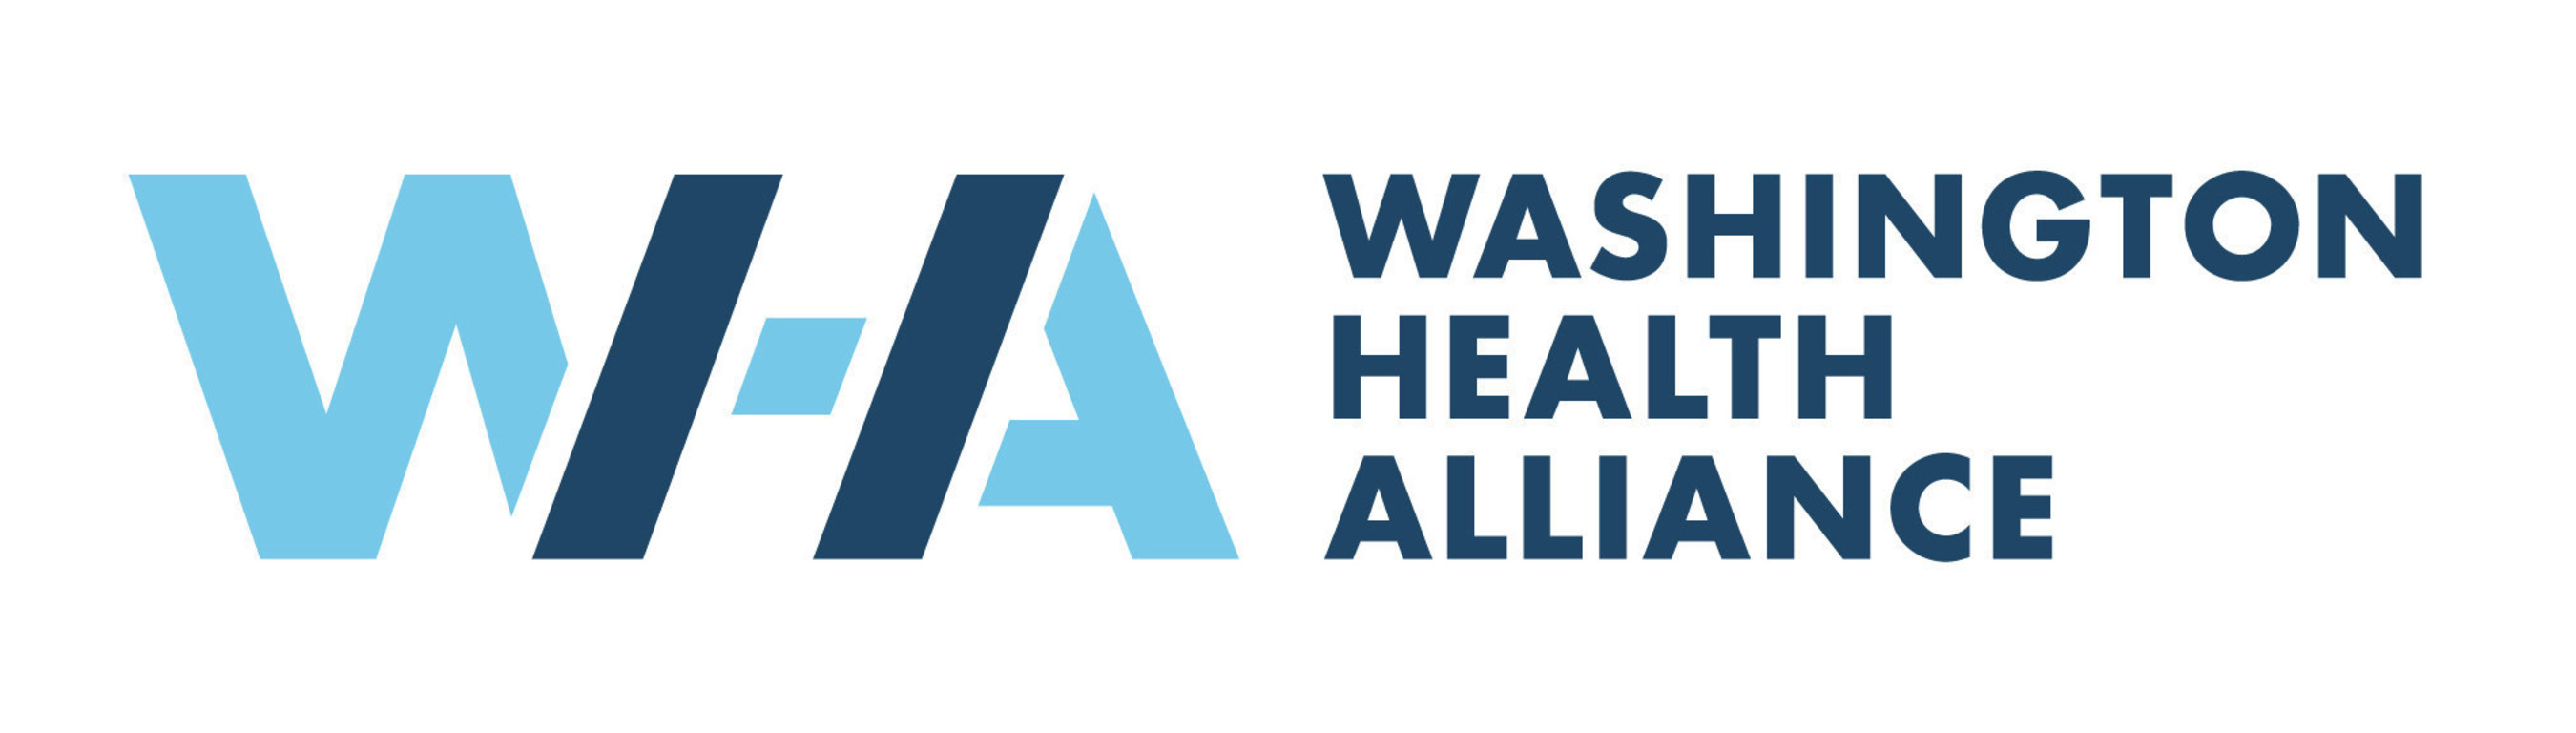 Washington Health Alliance